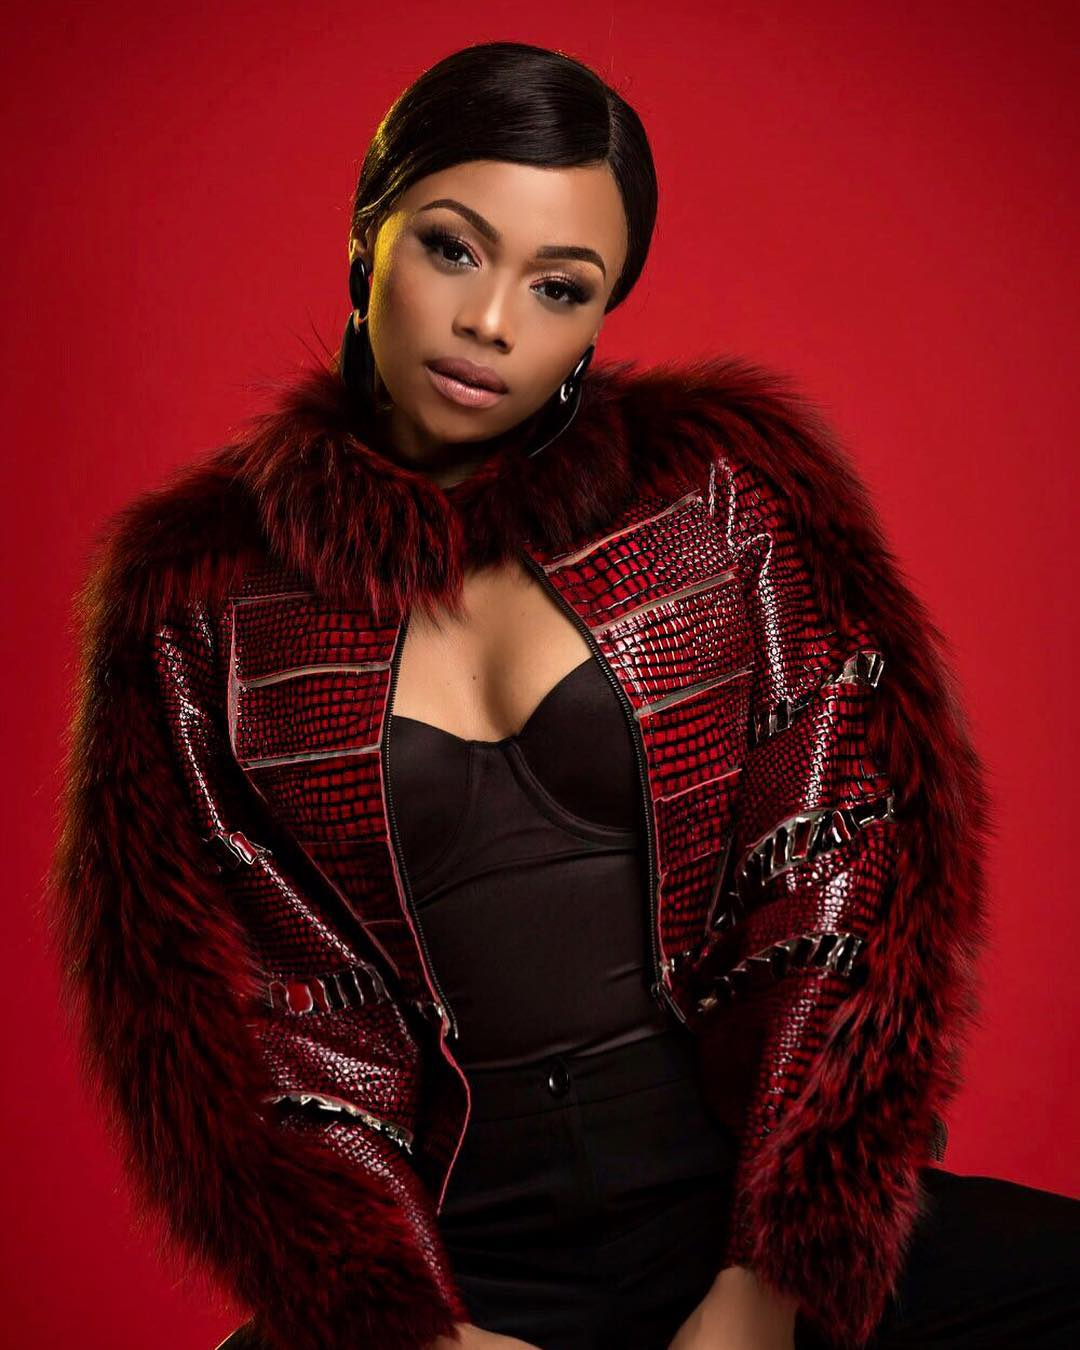 Bonang responds on whether she thinks of Dj Zinhle